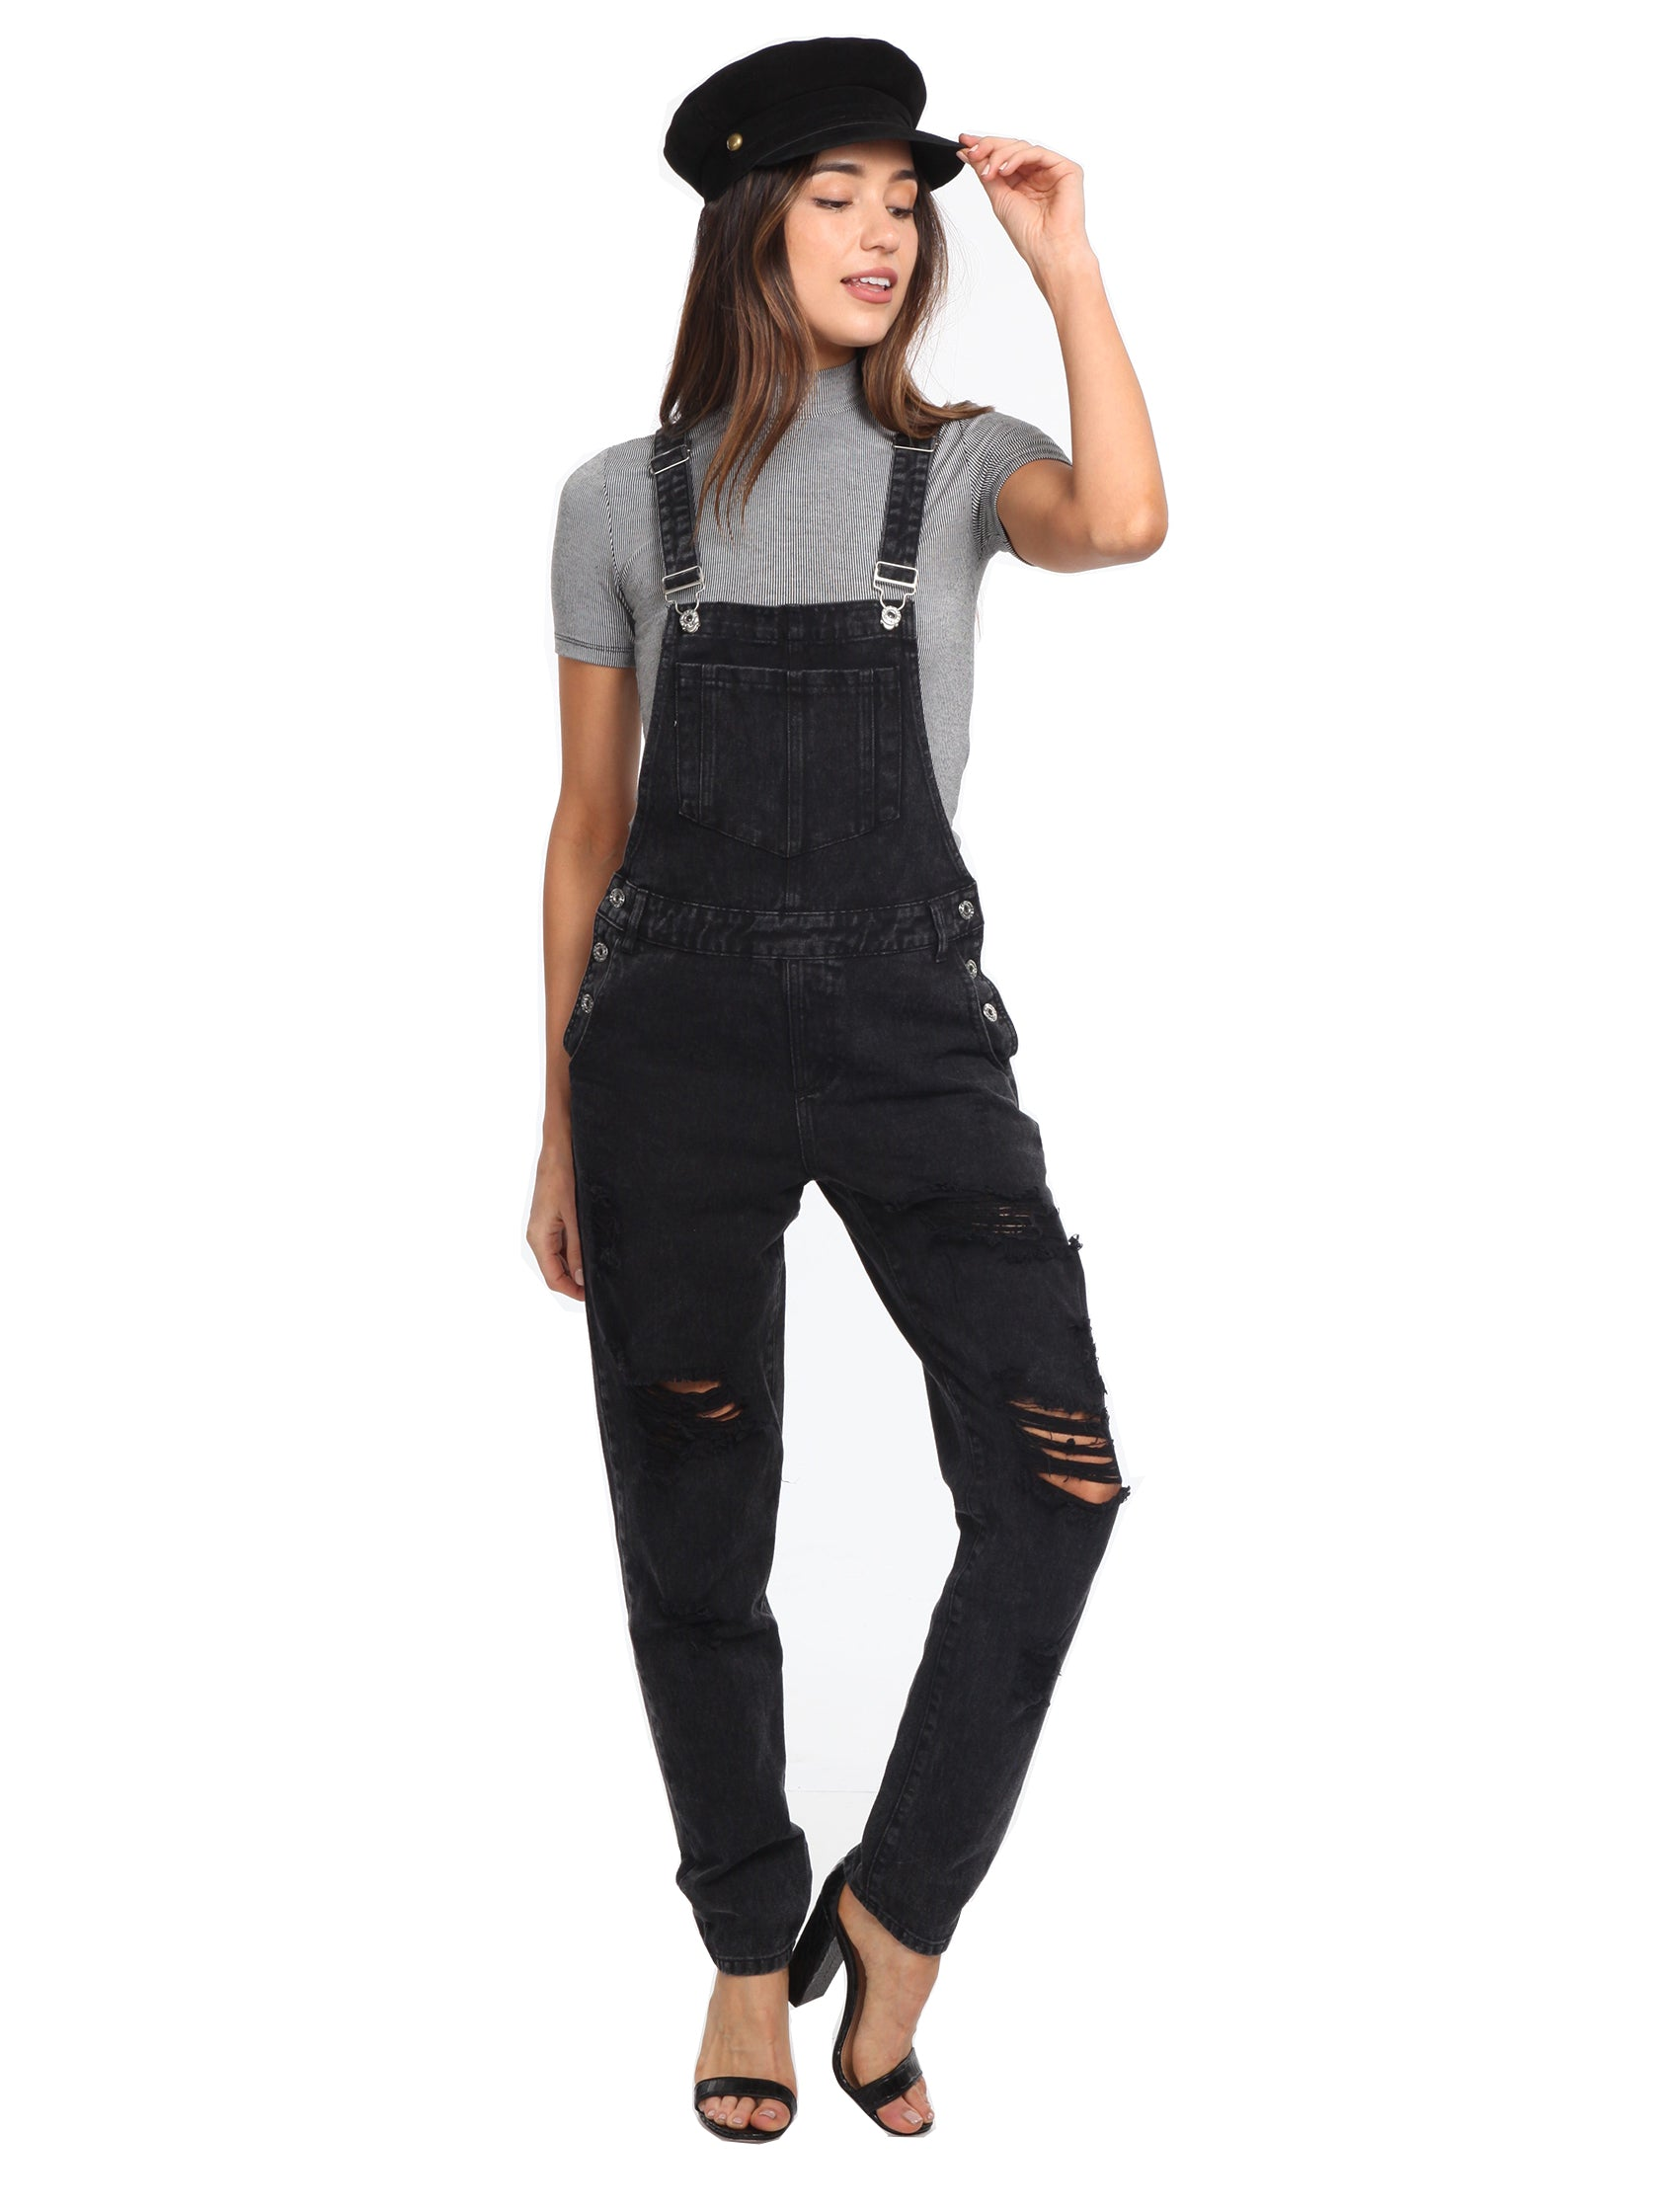 Girl wearing a jumpsuit rental from FashionPass called Here For A Good Time Overalls